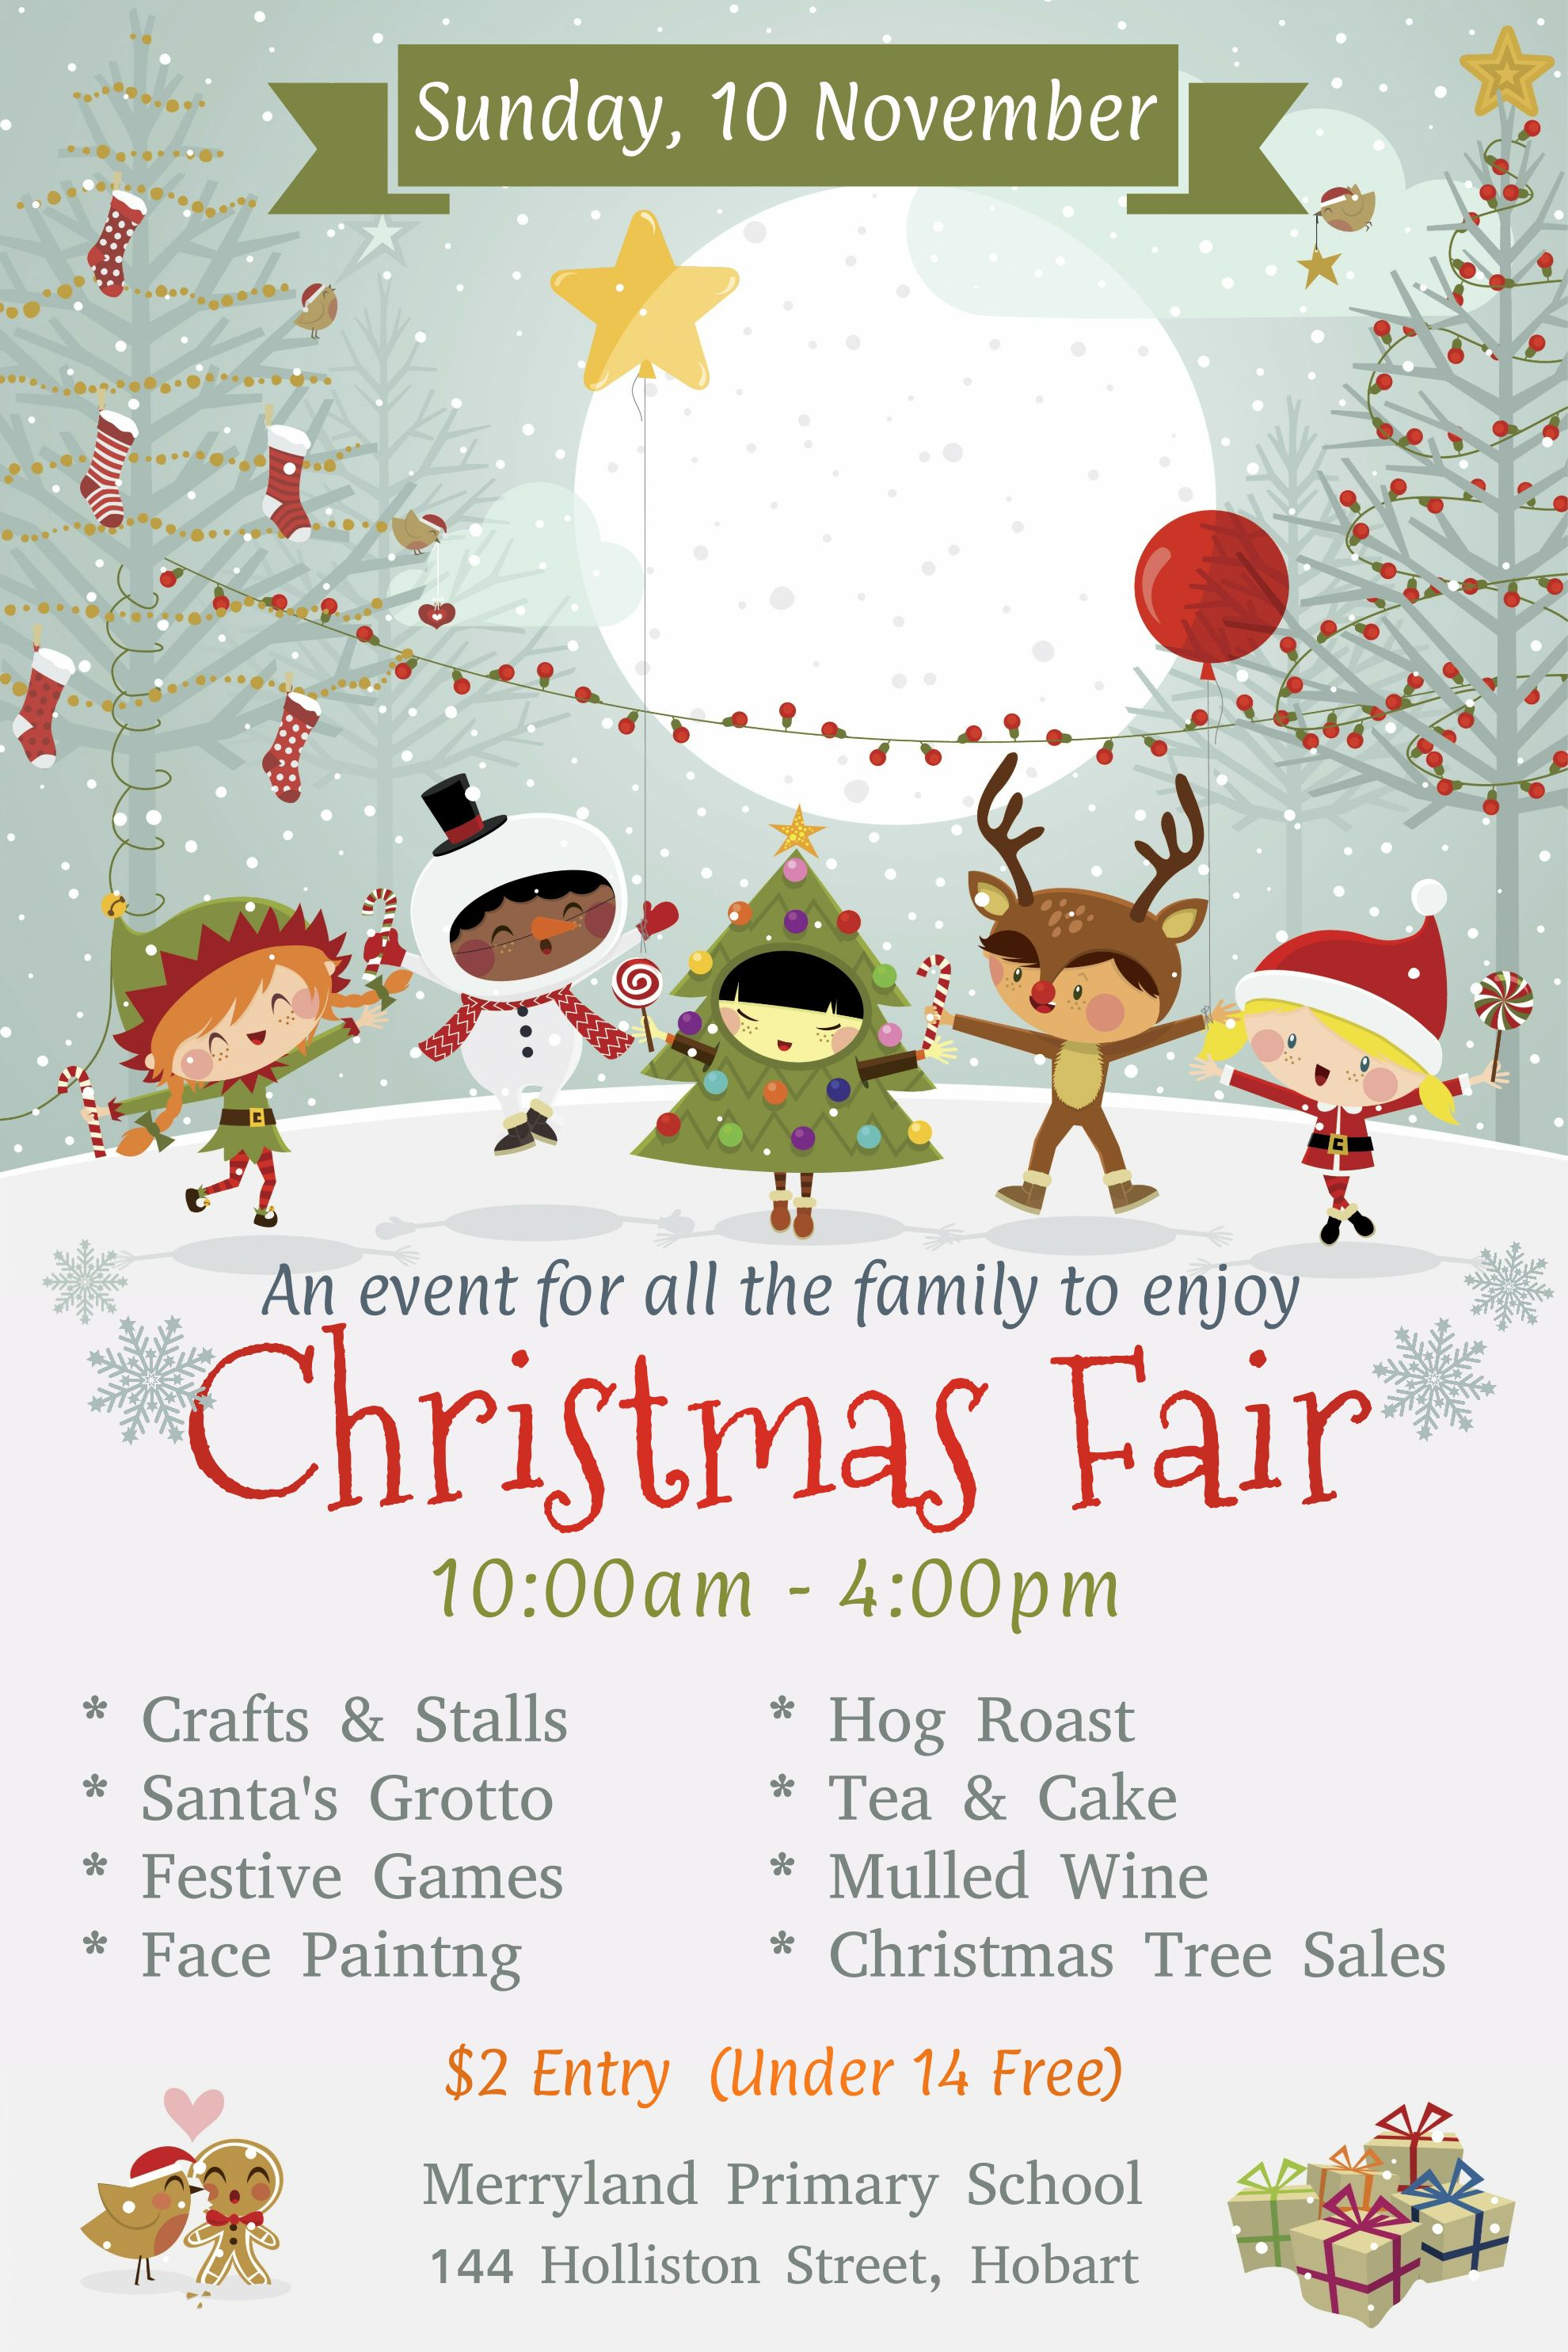 Christmas Fair Announcement Poster Template Design